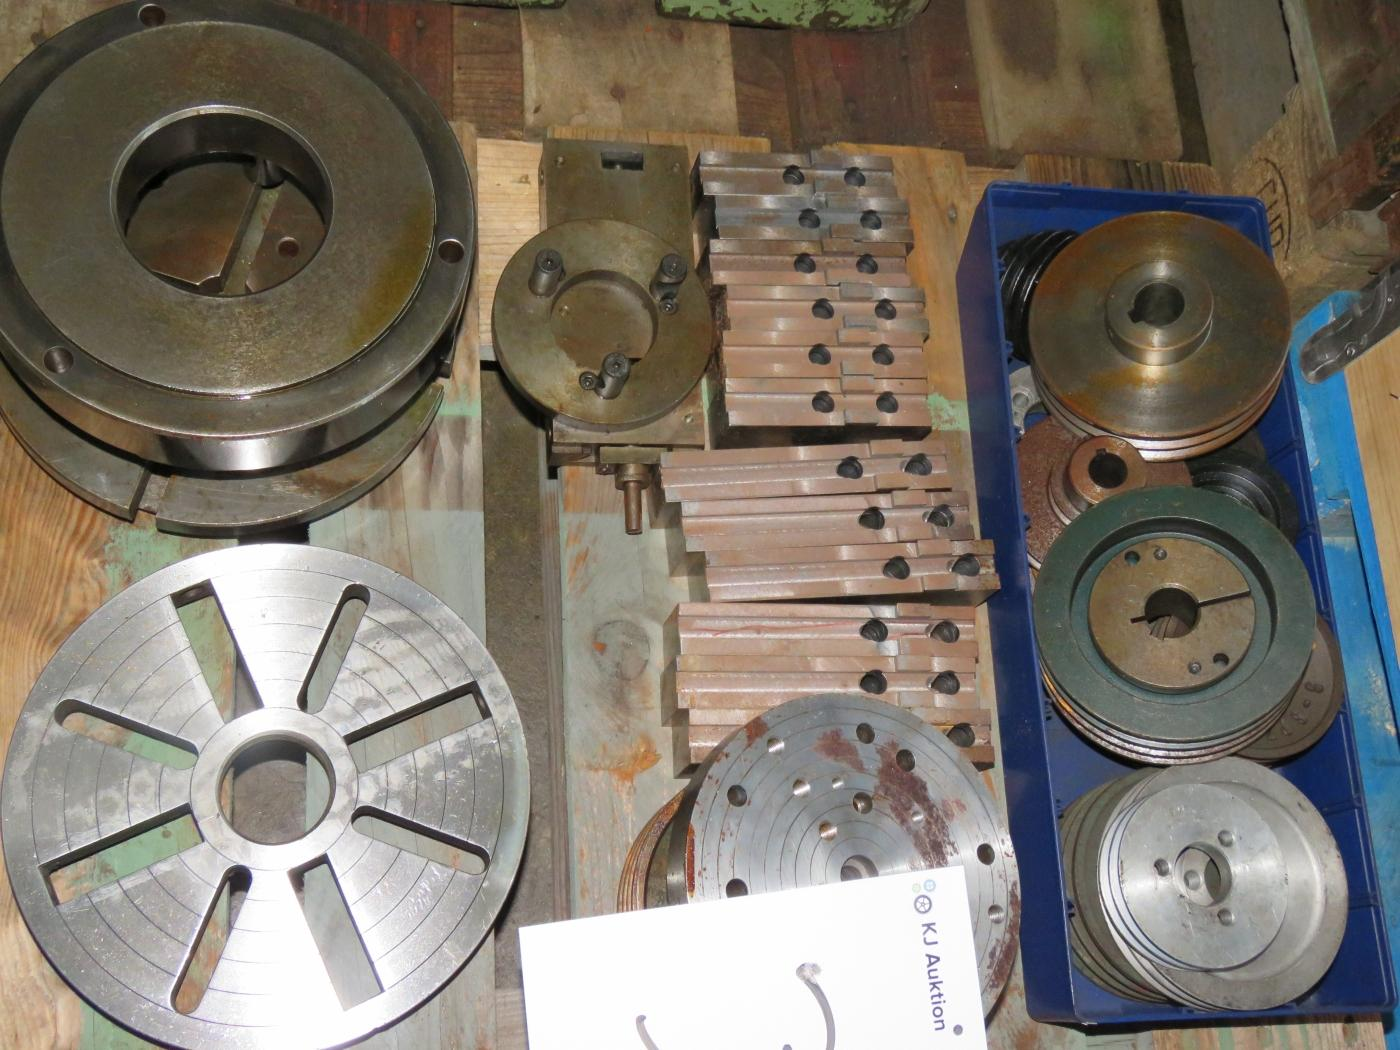 History Of Pulleys And Gears : Pallet with various gears pulleys kamlock flanks kj